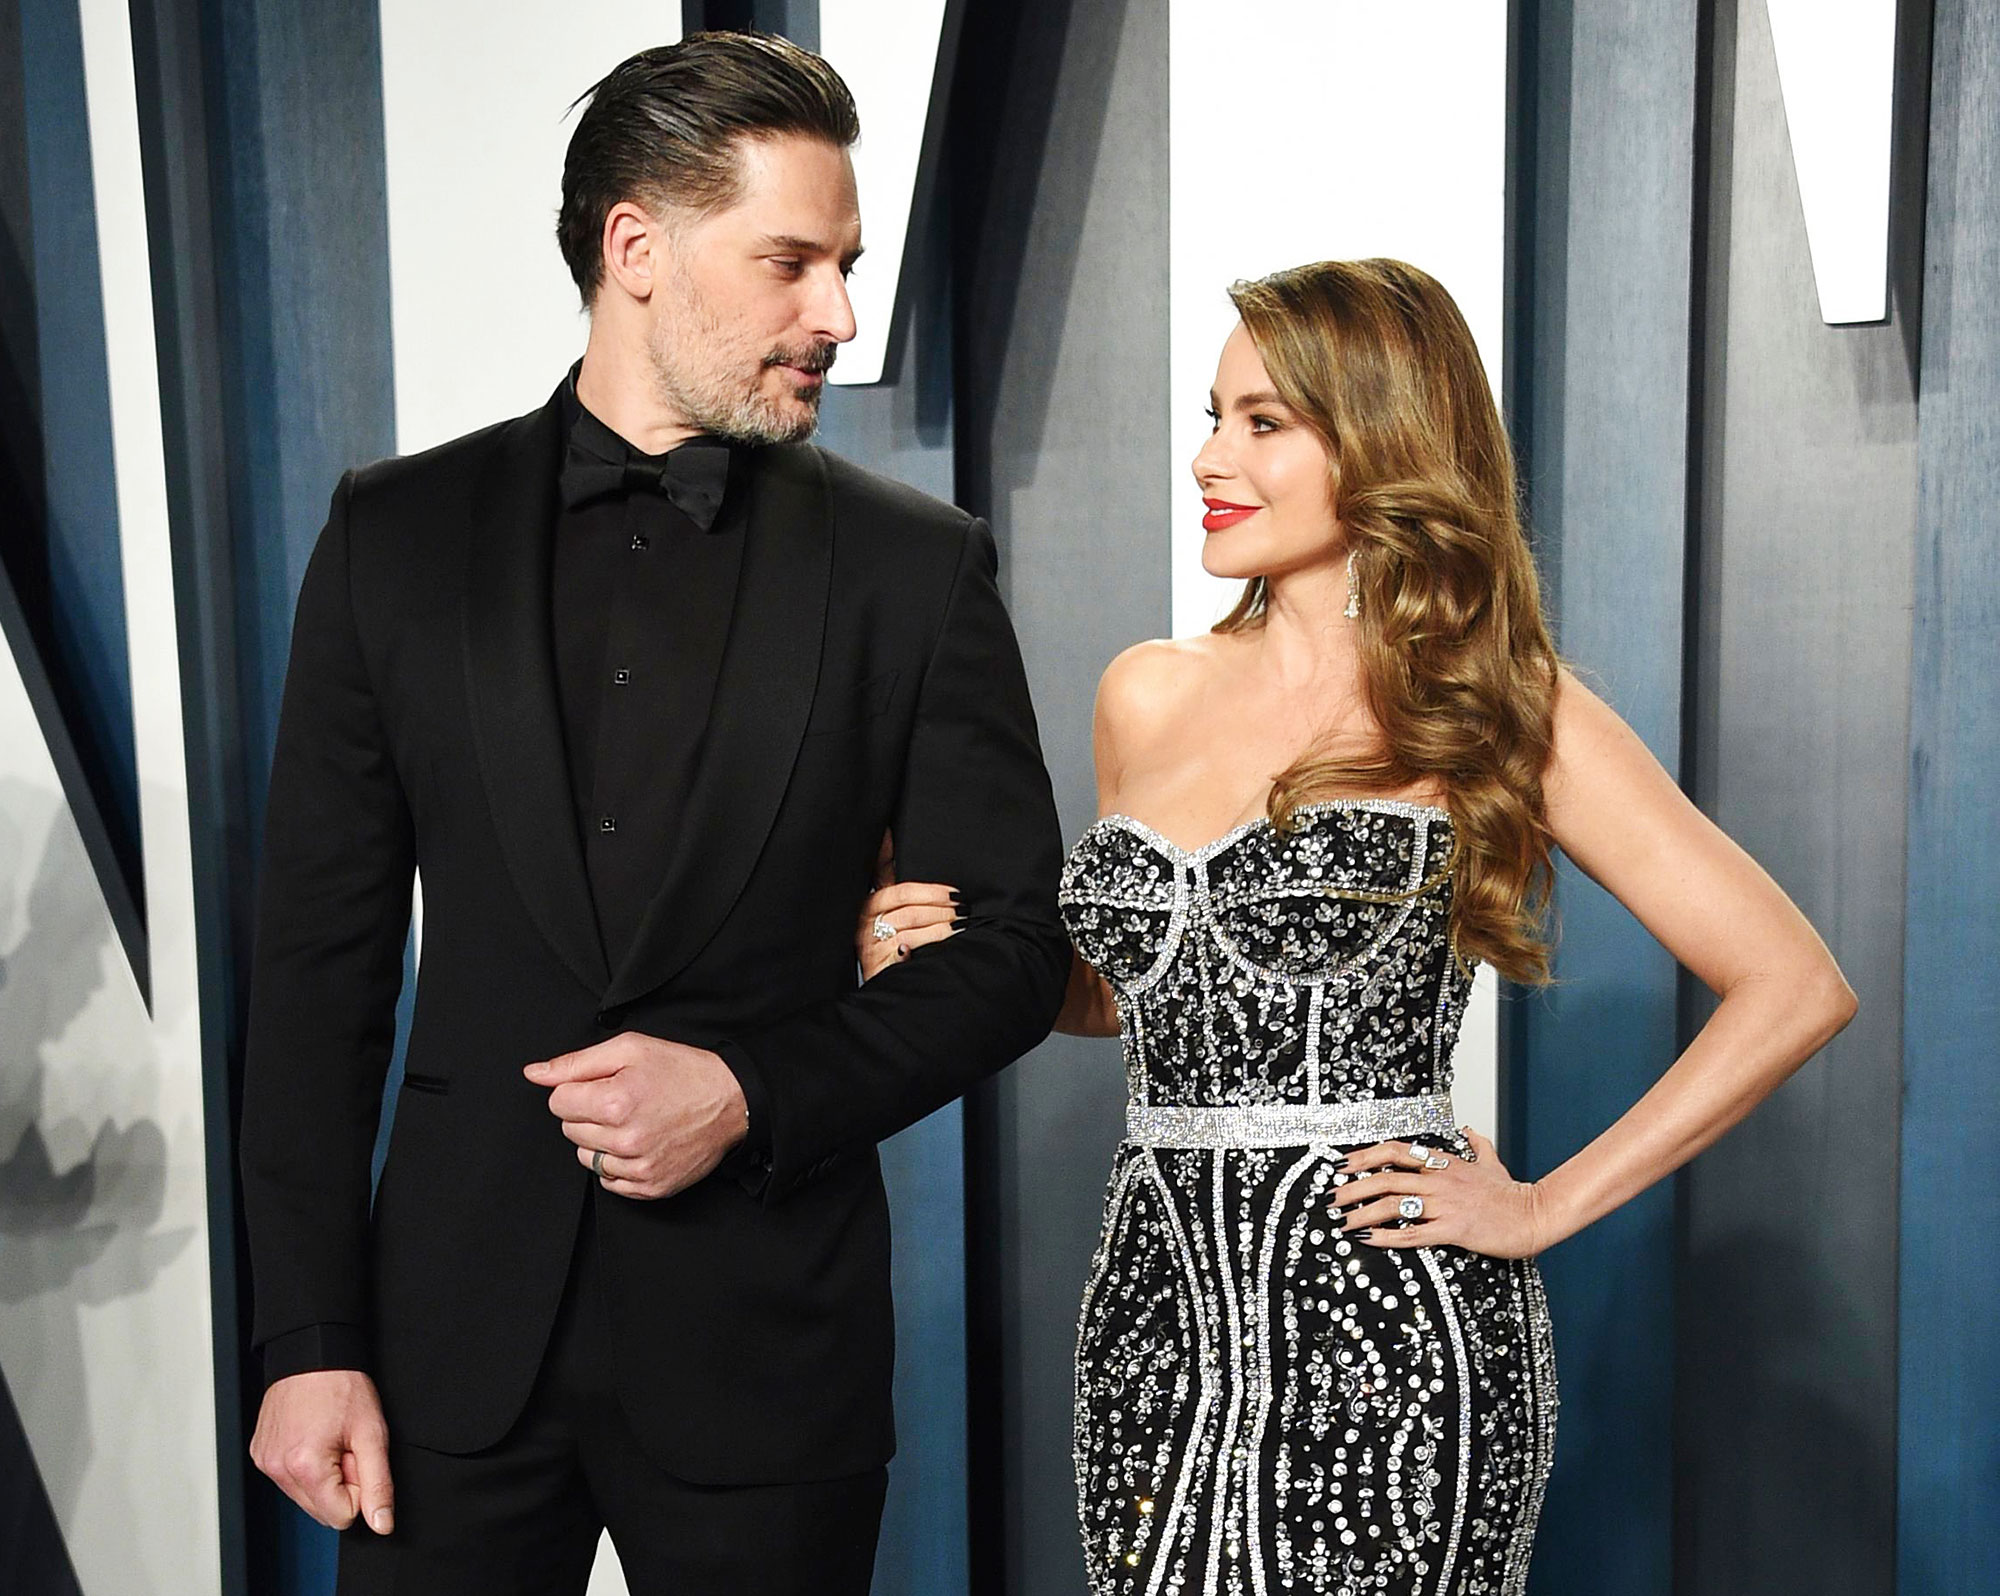 Joe Manganiello and Sofia Vergara attend the Vanity Fair Oscar Party Joe Manganiello Recalls Falling in Love With Wife Sofia Vergara